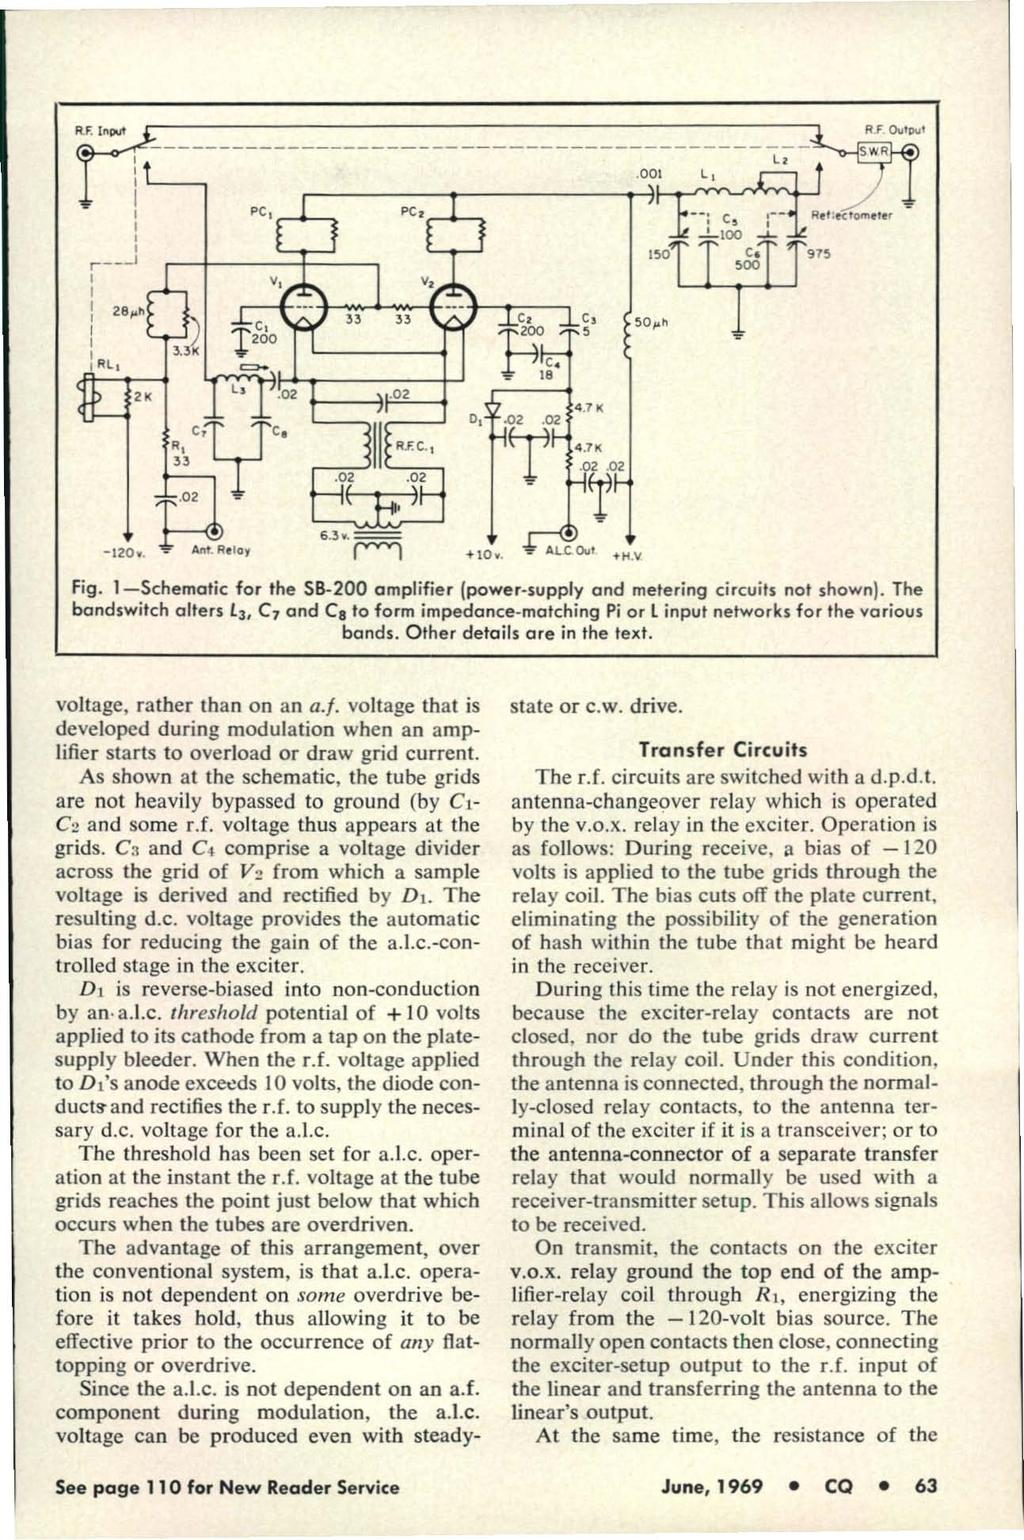 Cq Reviews The Heathkit Sb 200 Linear Amplifier Pdf Irs2092 Class D Circuit Lm1036 Tone Controlled Audio 2 L R J I 28 T Rl